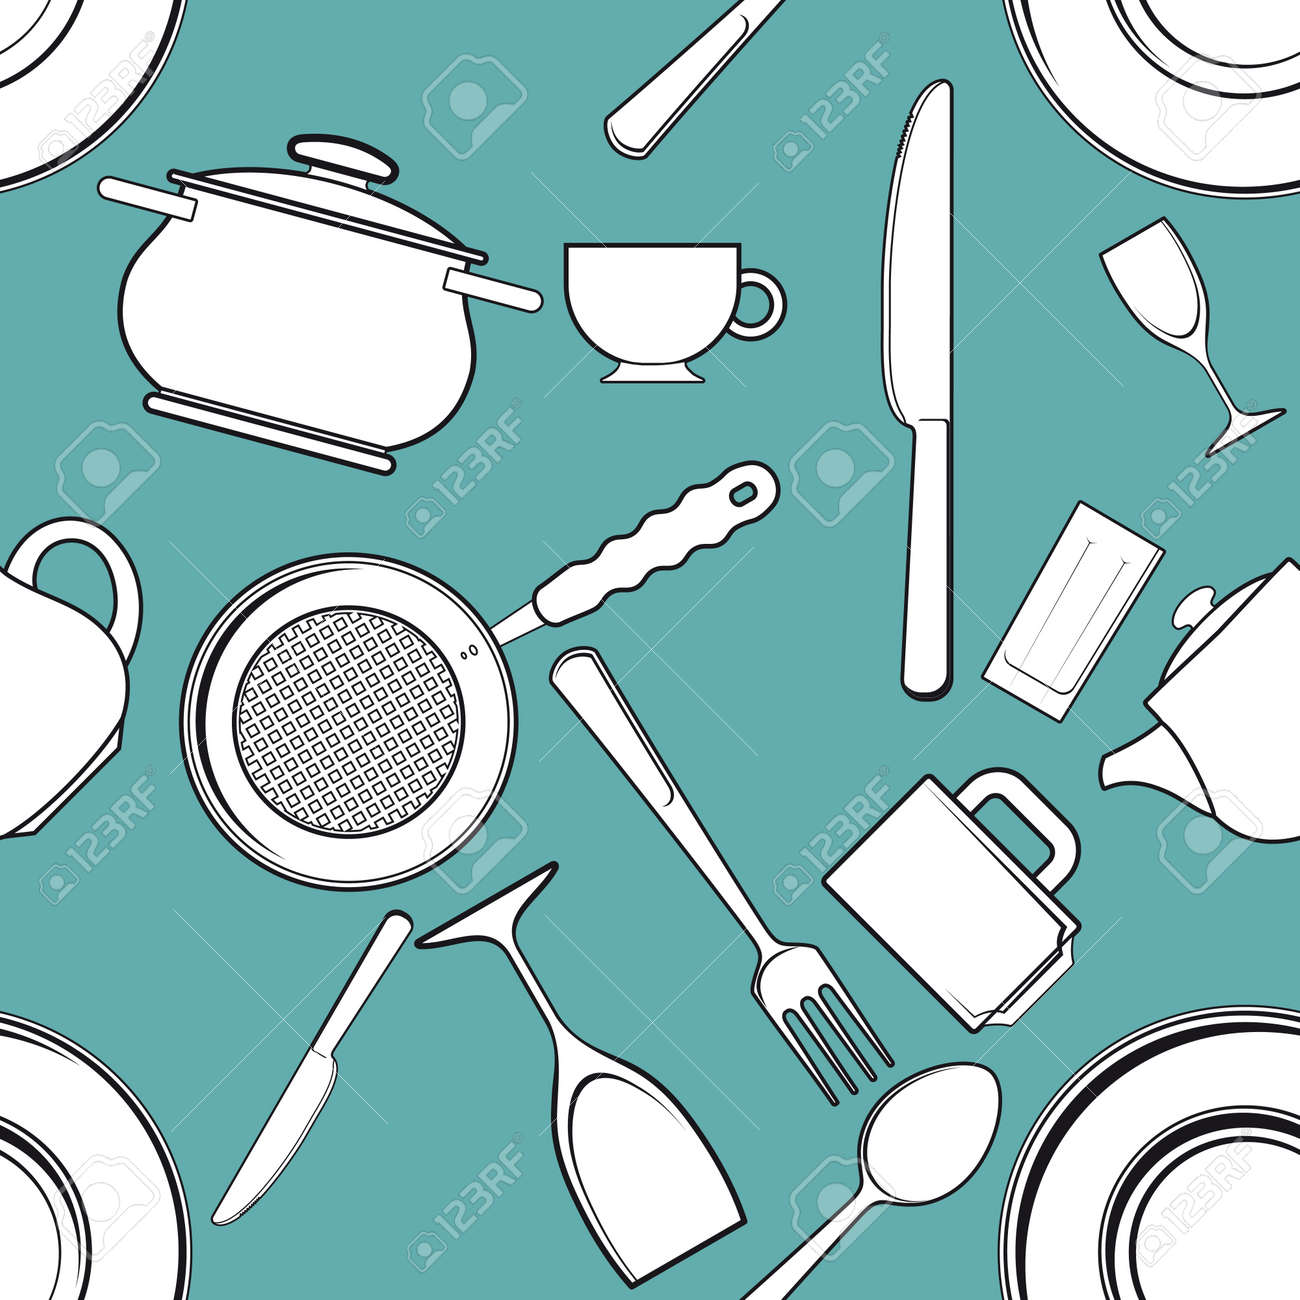 seamless background with antique kitchen utensils and tableware